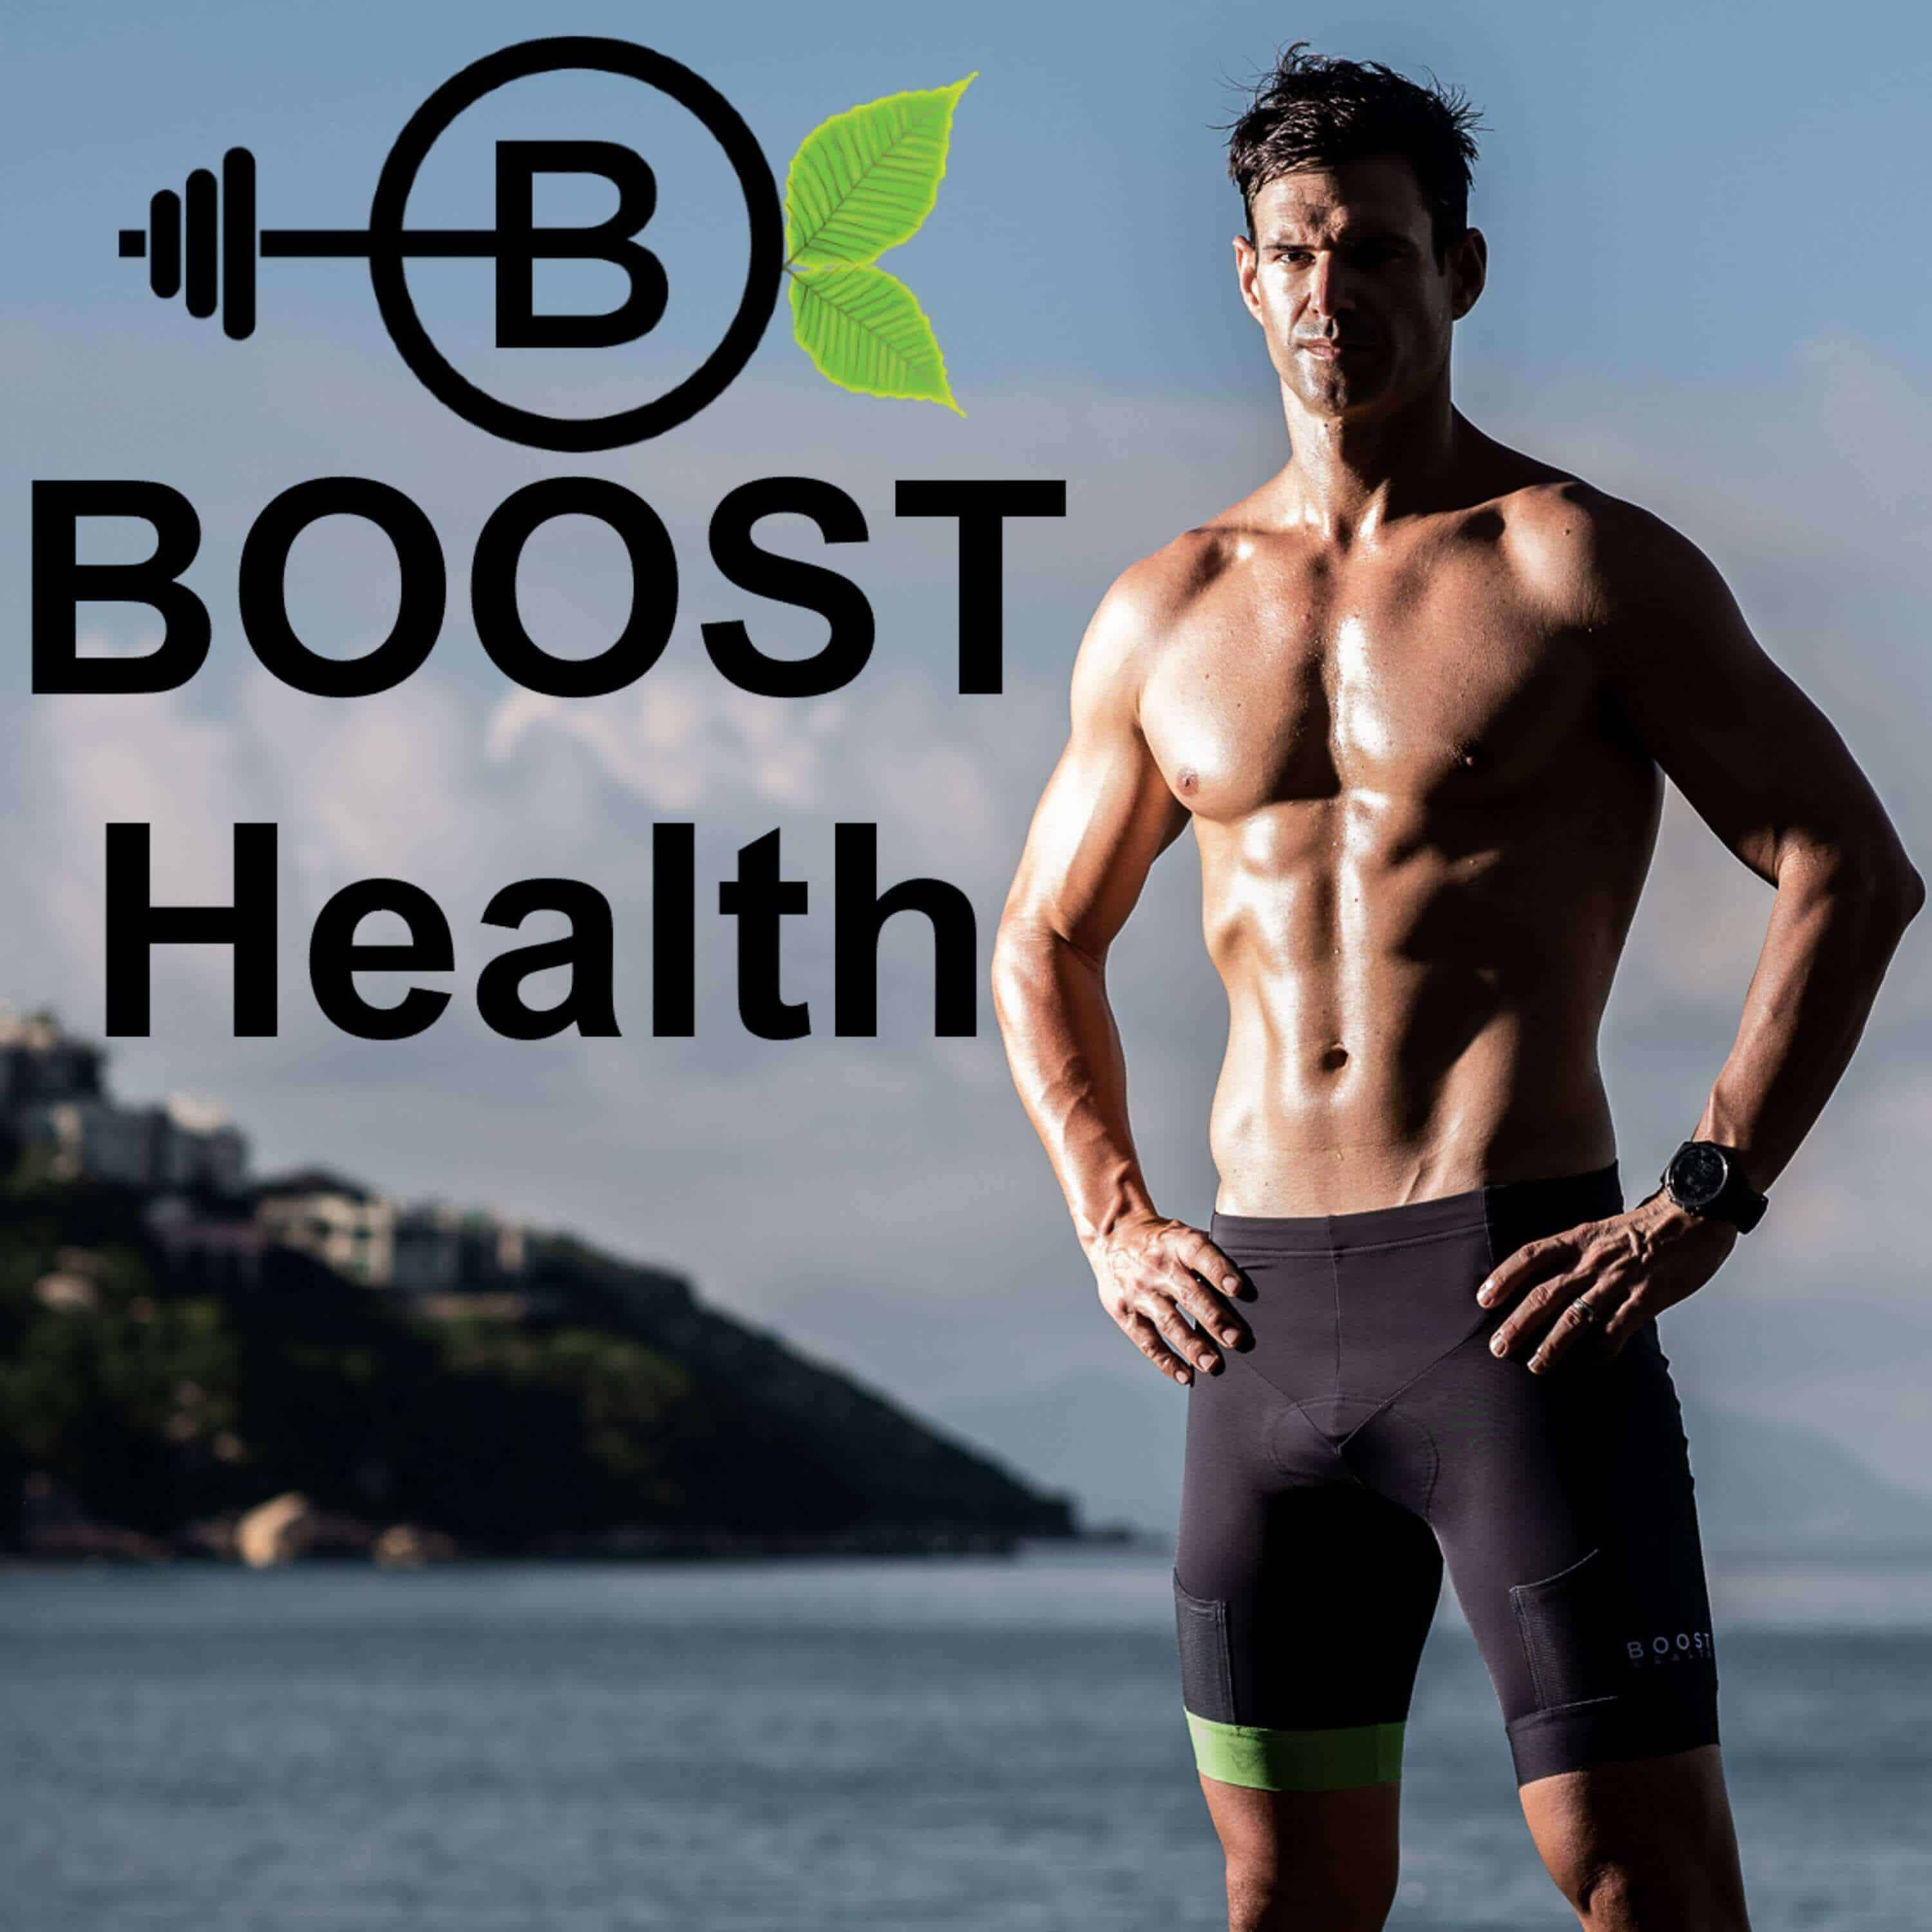 Amino Acids Help Boost Our Health